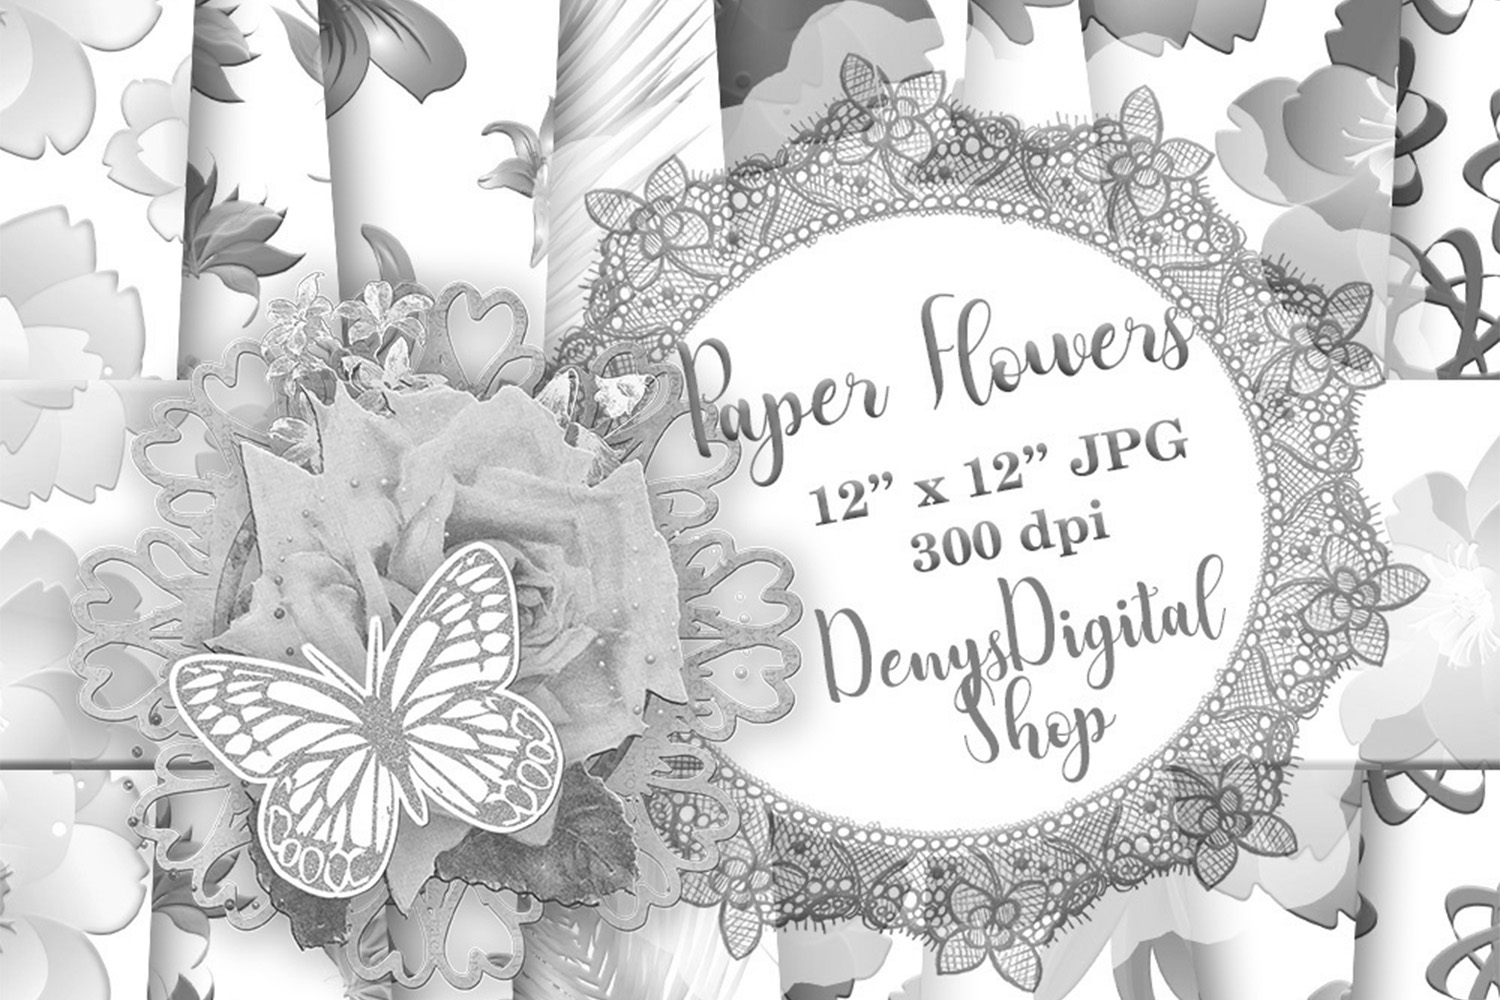 Download Free Paper Flowers Wedding Paper Wedding Graphic By Denysdigitalshop for Cricut Explore, Silhouette and other cutting machines.